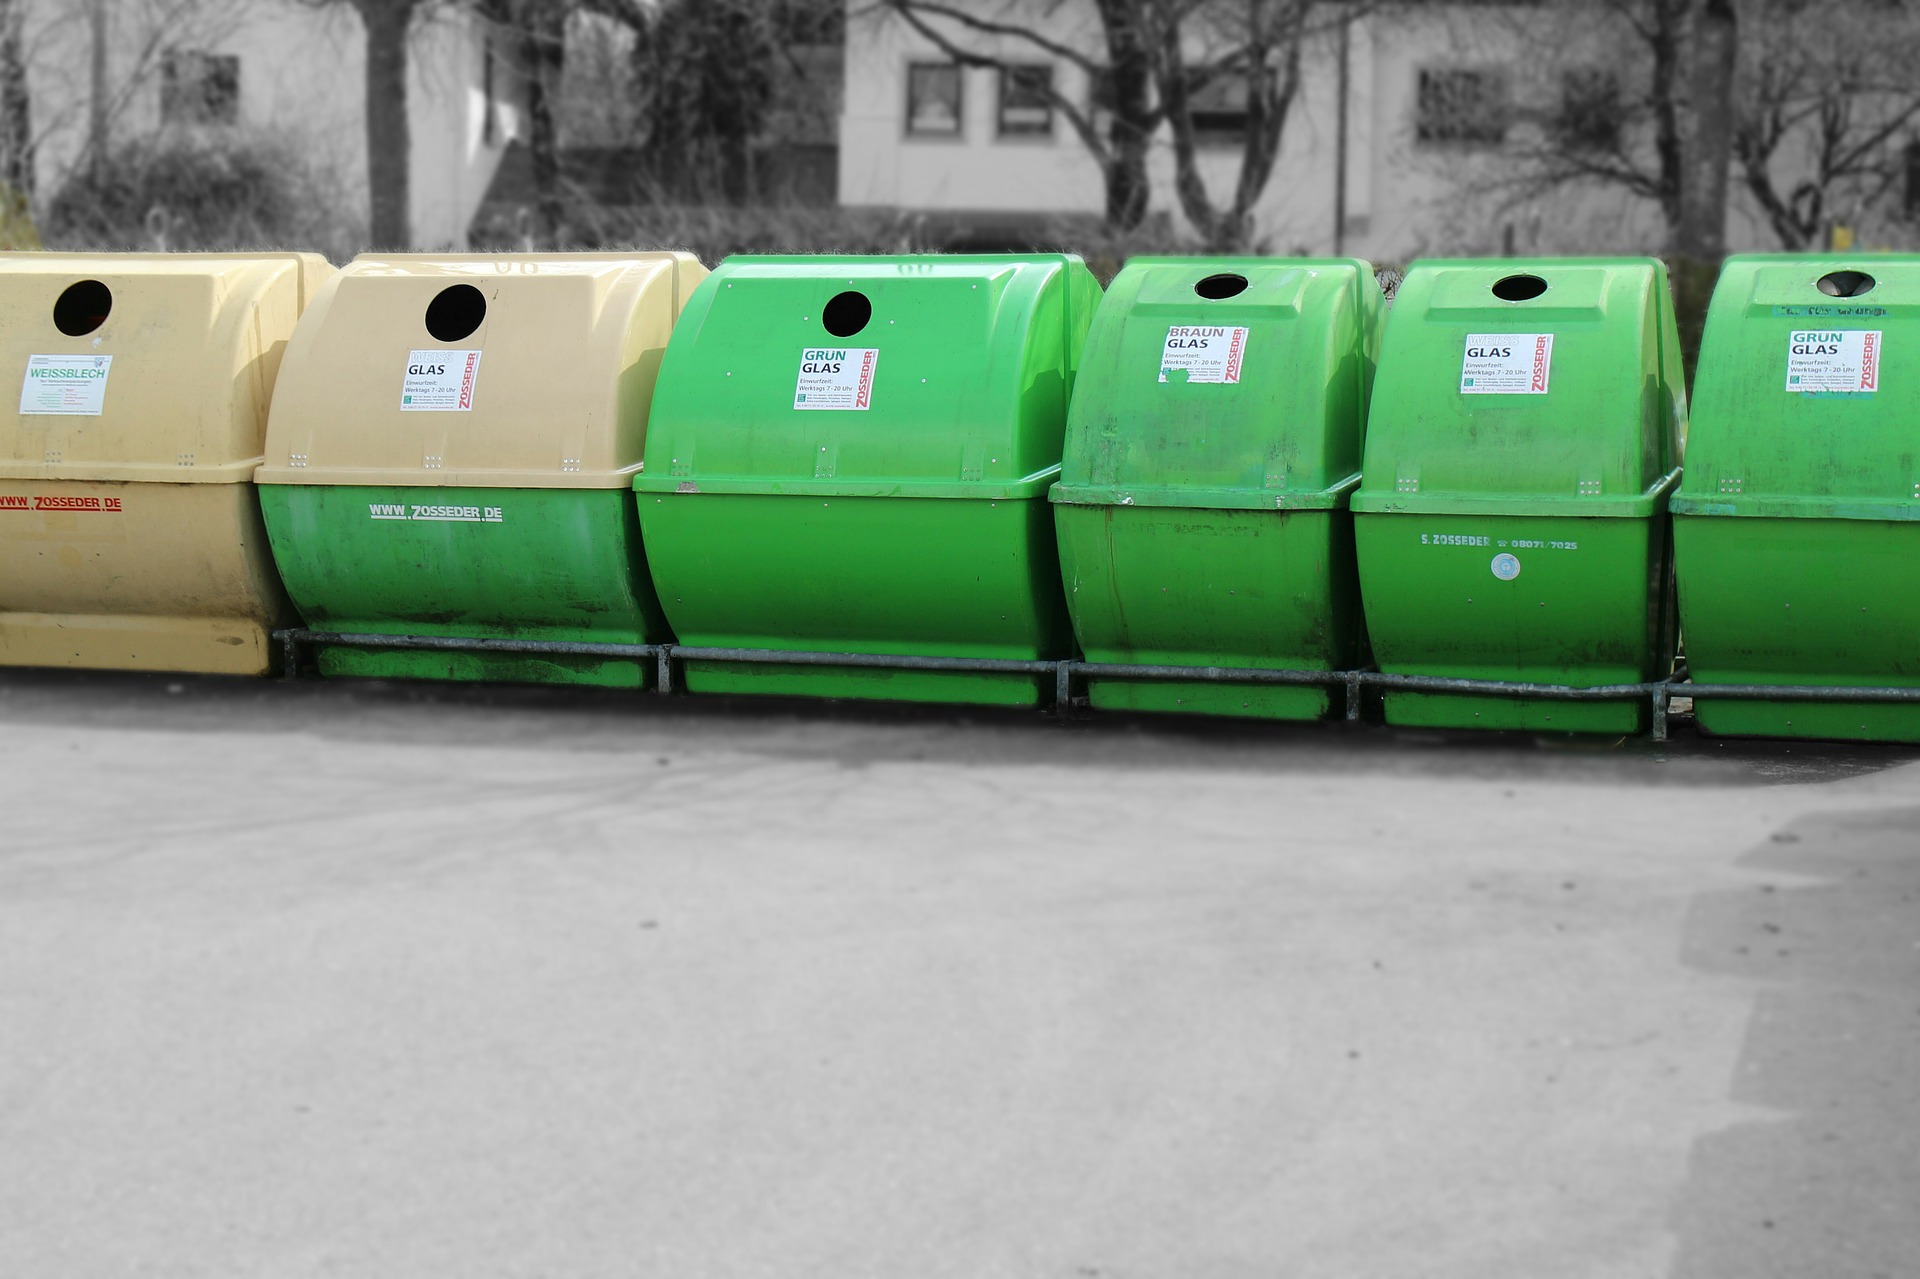 Service Garbage Dump Recyclage